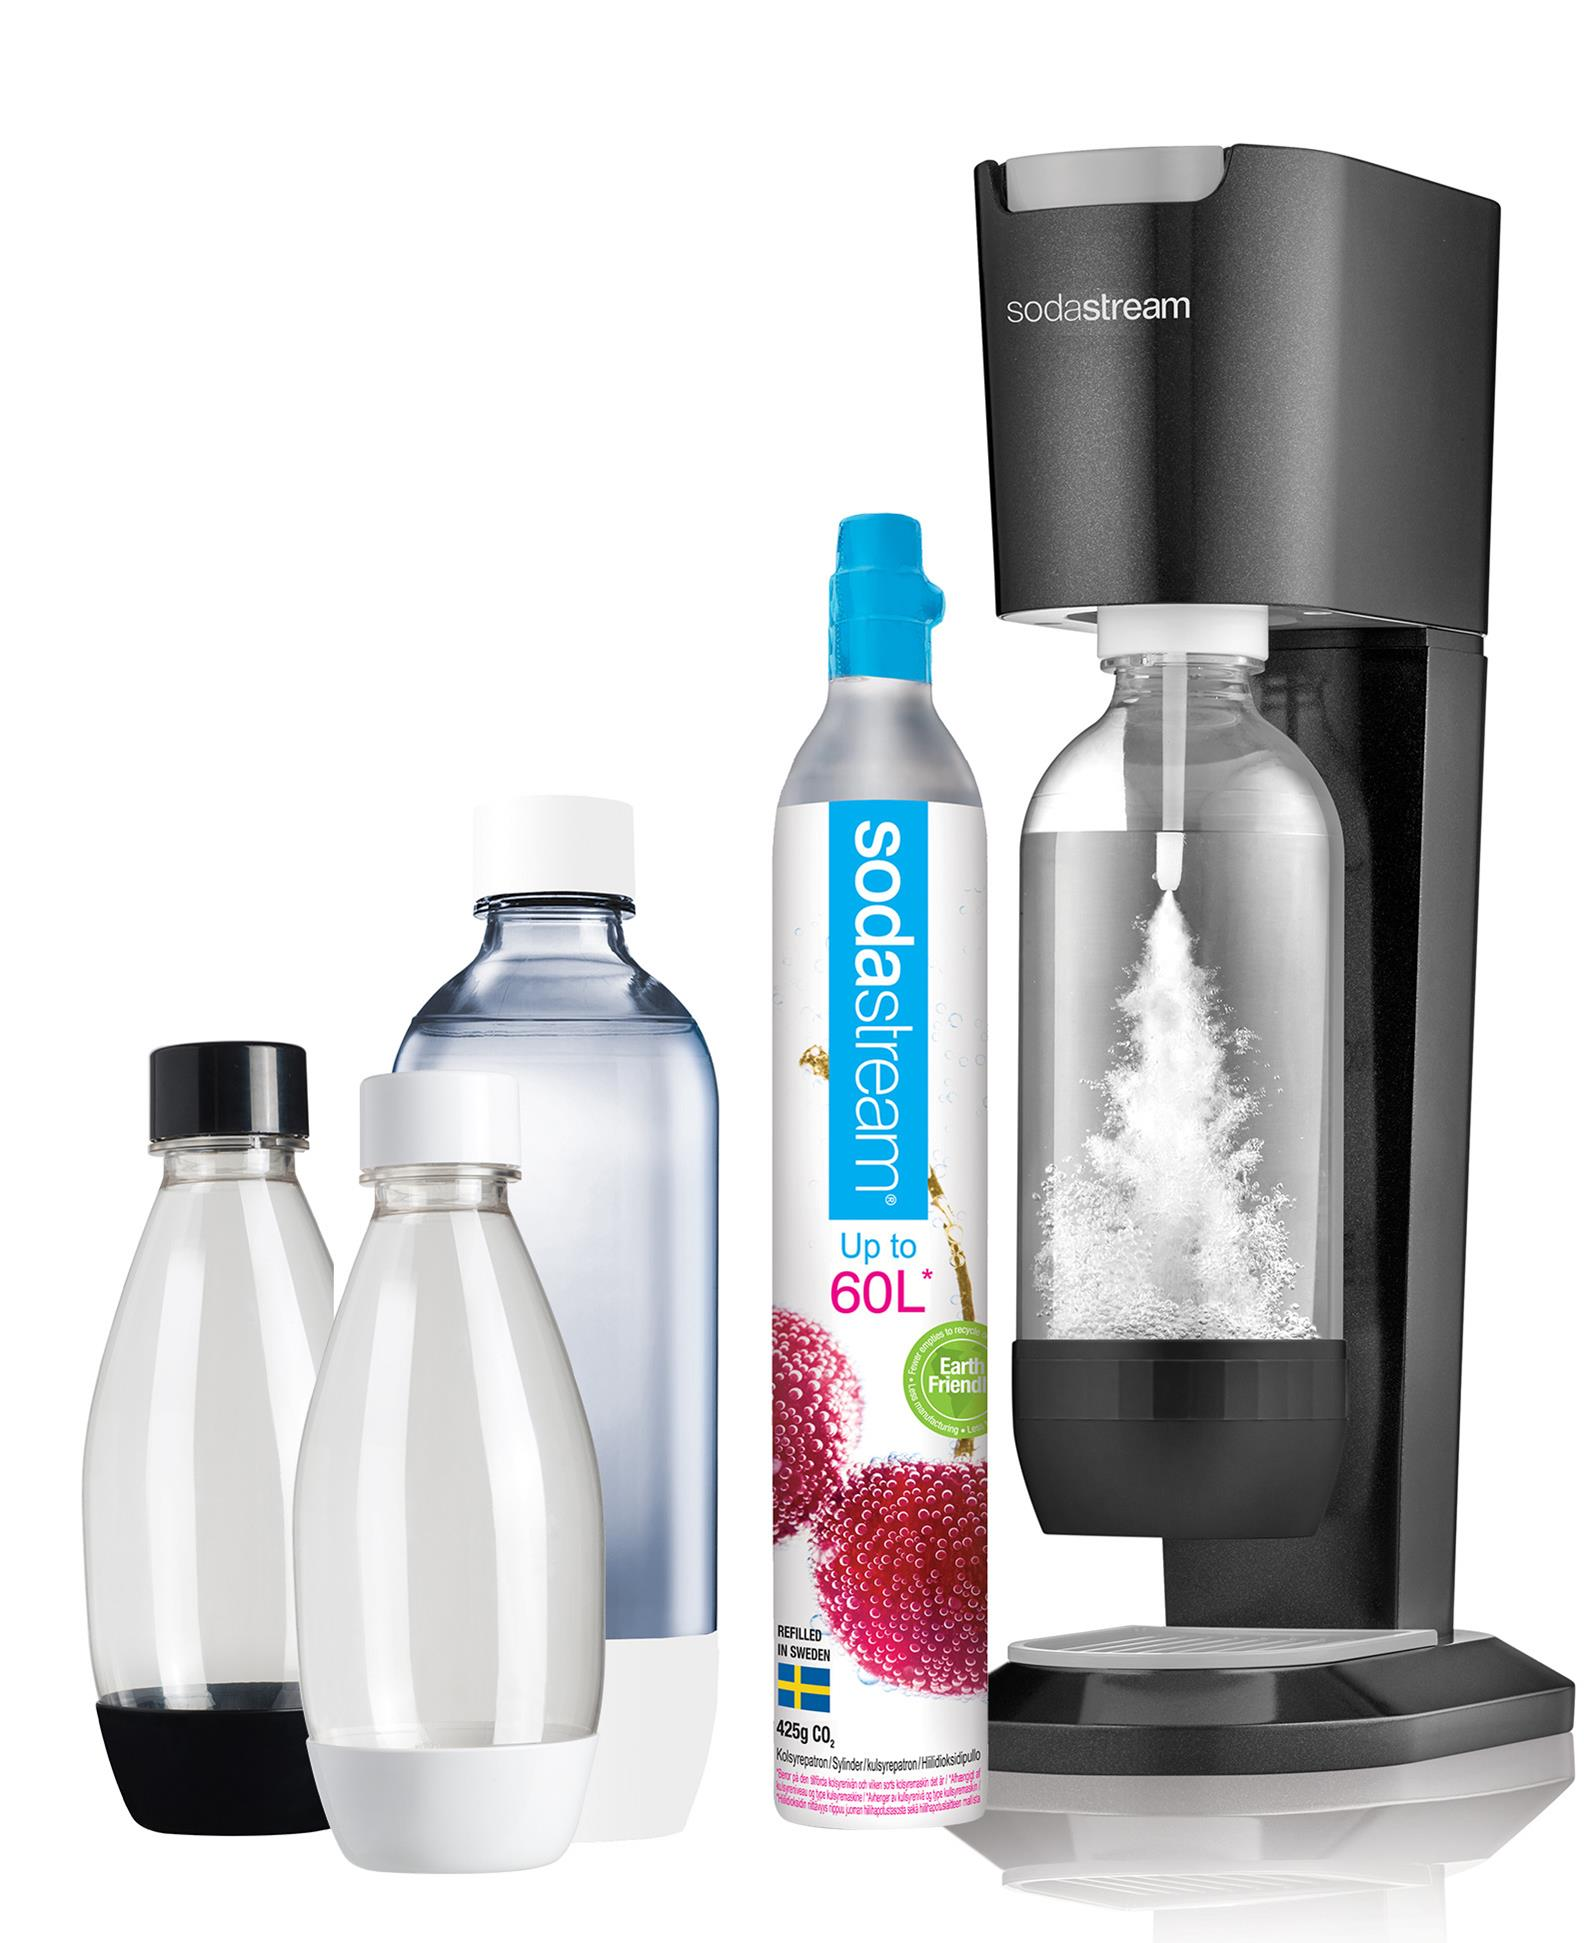 sodastream best i test. Black Bedroom Furniture Sets. Home Design Ideas